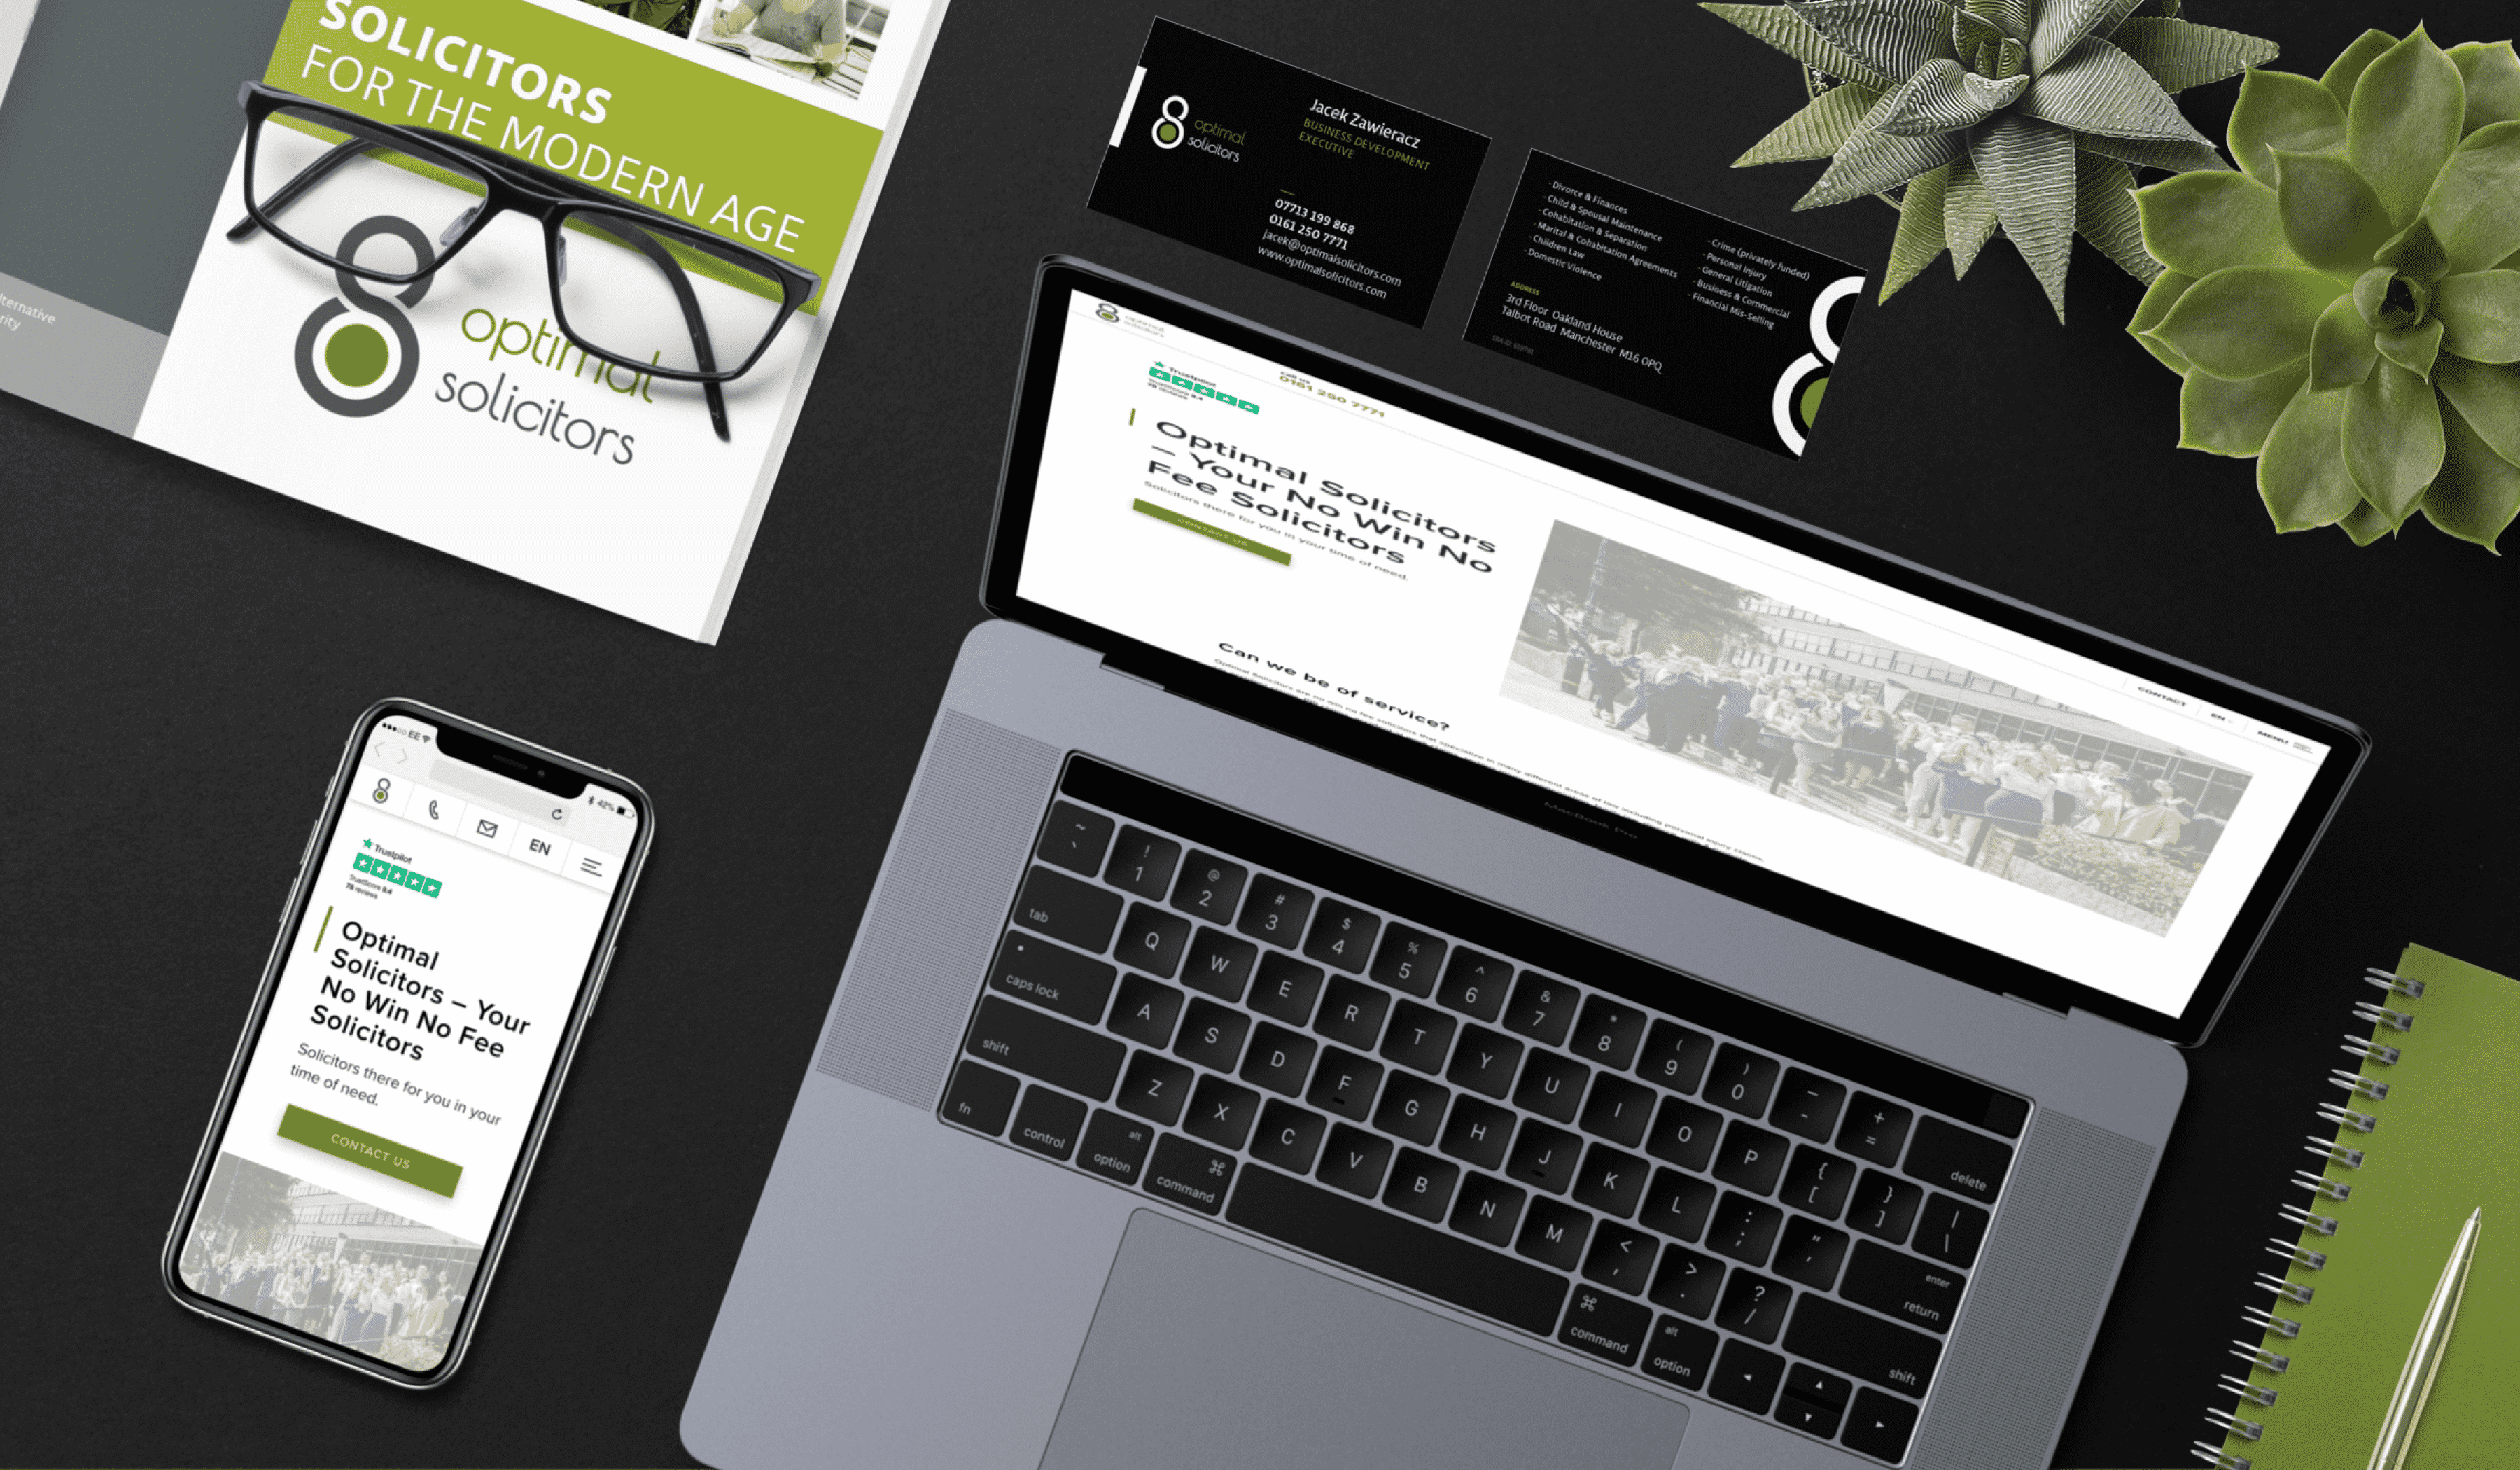 Web design and marketing for specialists in law on a wide scale. They deal with all cases starting from accident claims, divorces and business negotiations